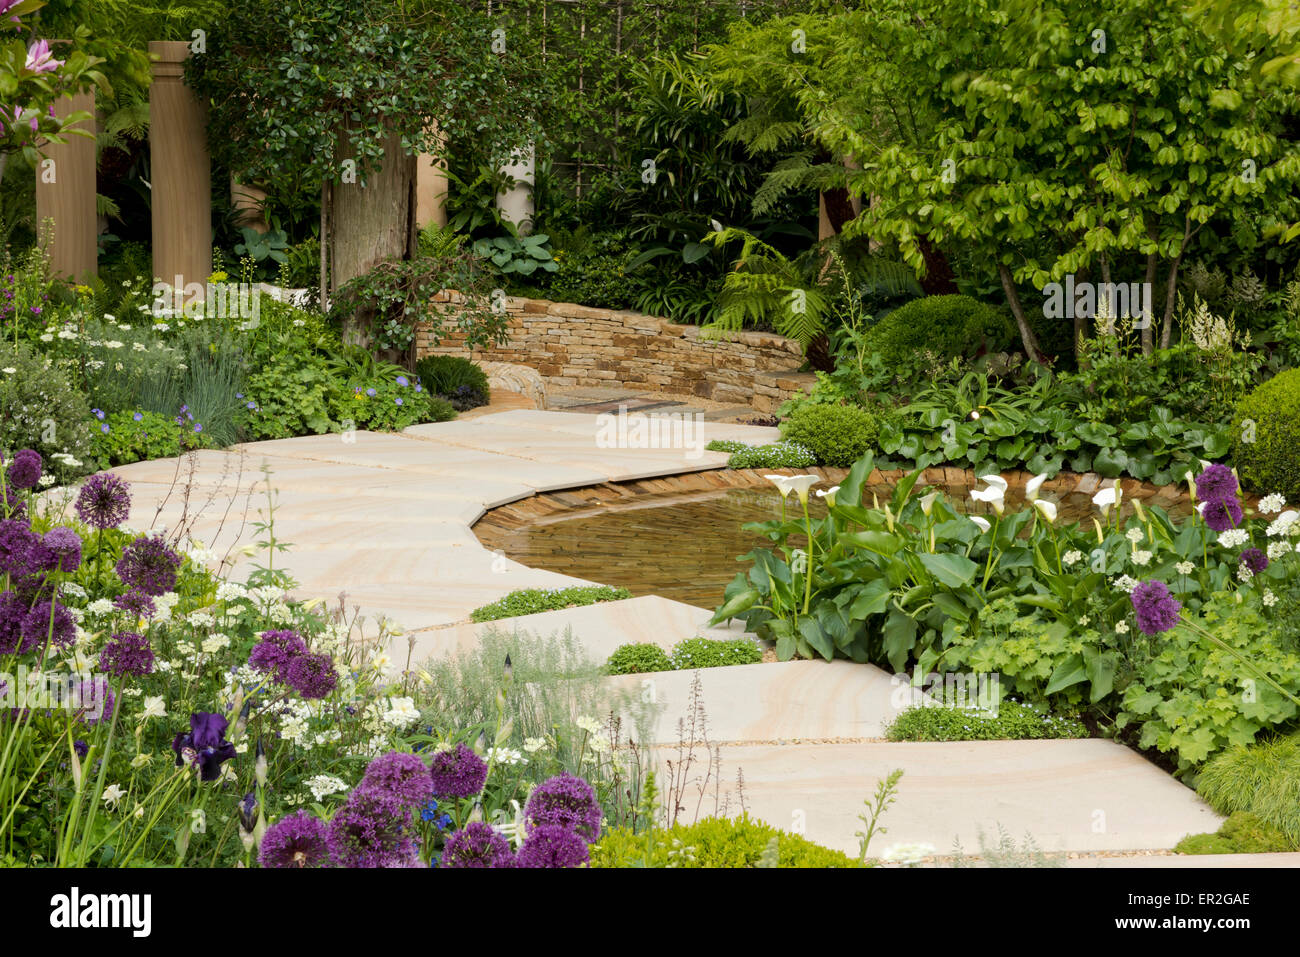 The Time In Between Garden  designed by Charlie Albone at The RHS Chelsea Flower Show, 2015, London, UK - Stock Image